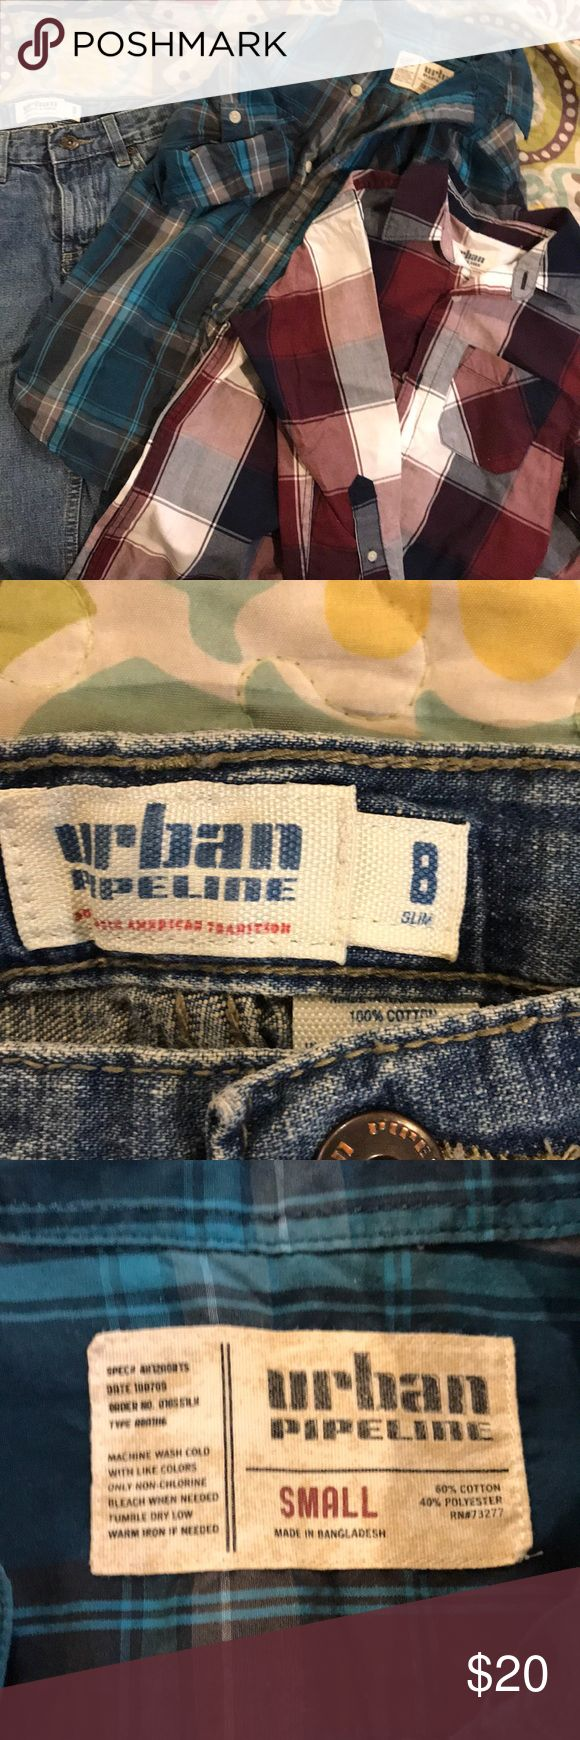 Lot of Urban Pipeline from Kohl's 8slim jeans and two long